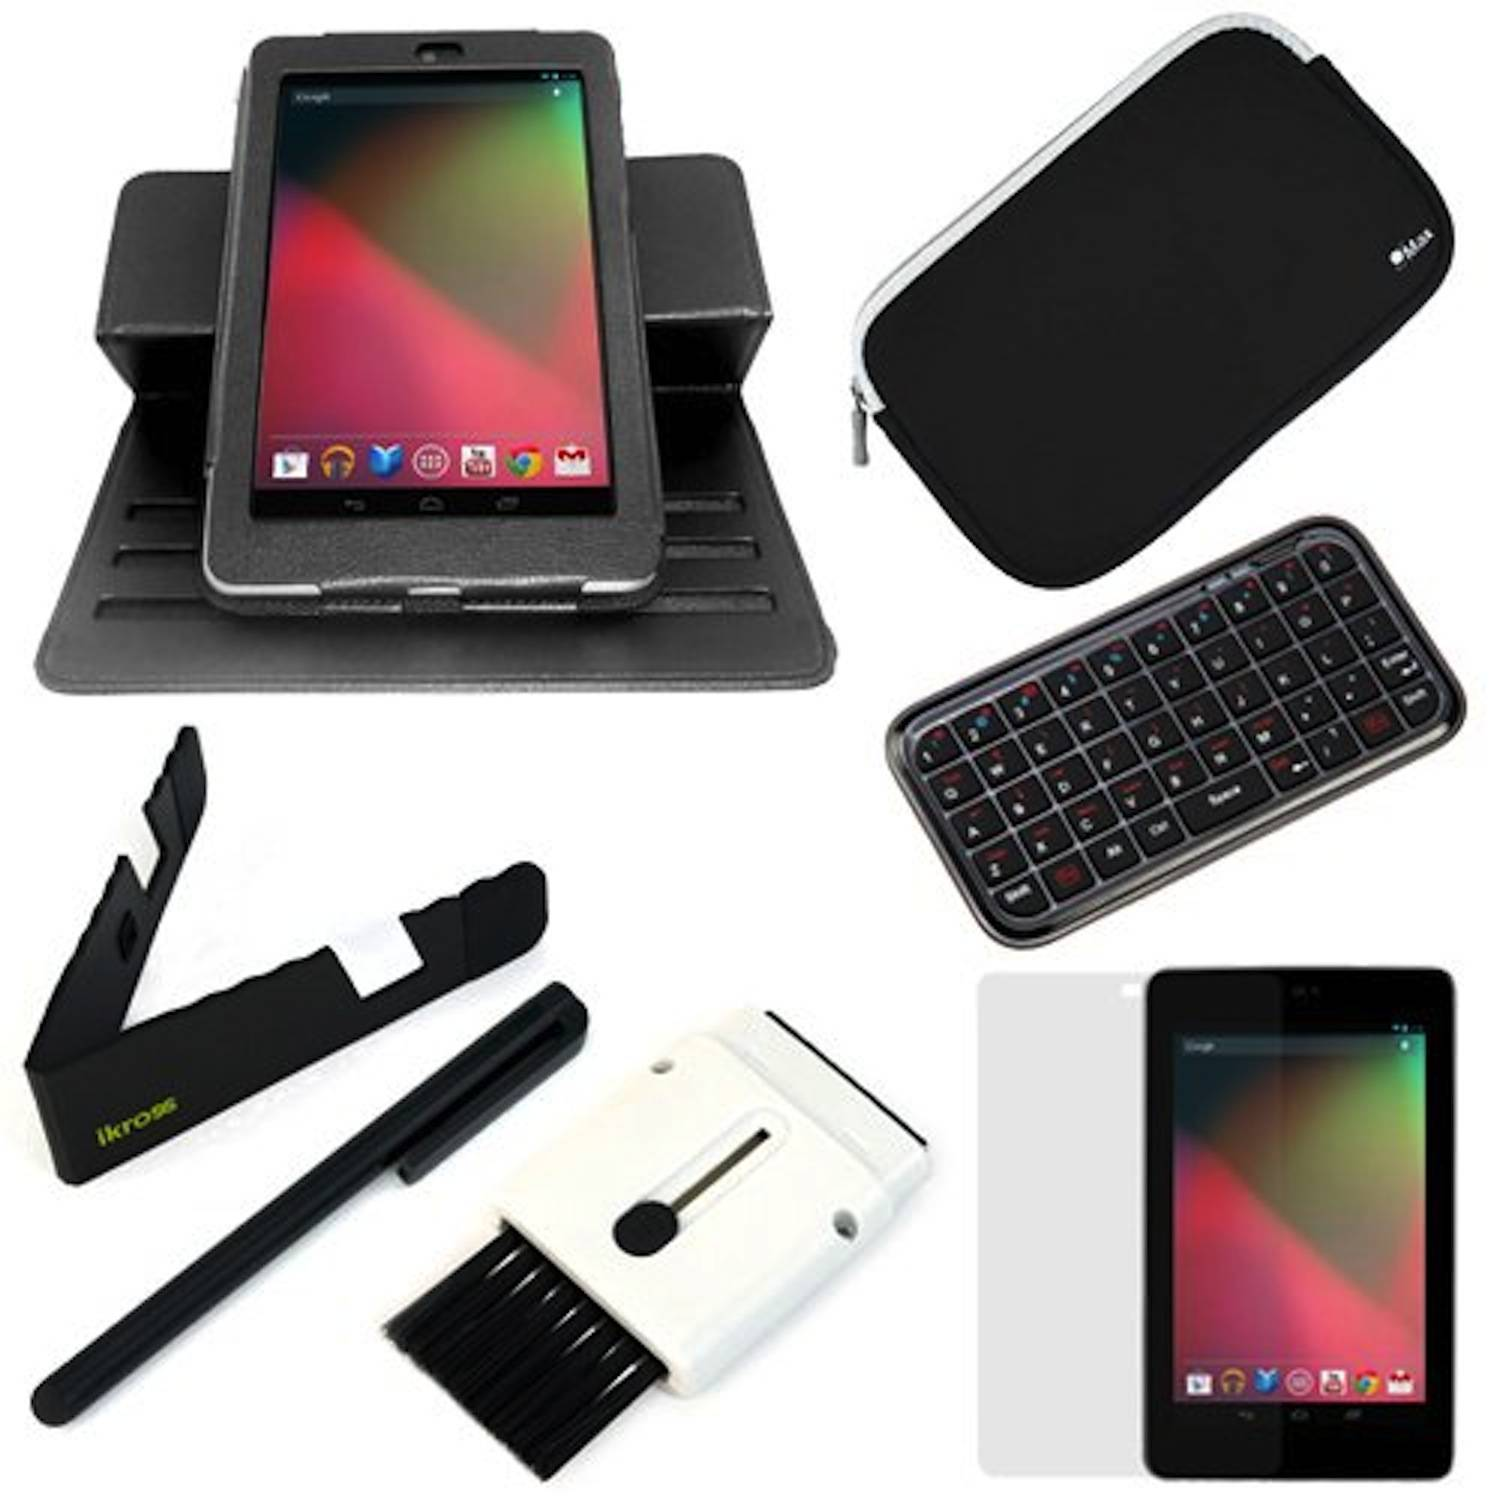 Display Nexus 7 Ricambi e Accessori